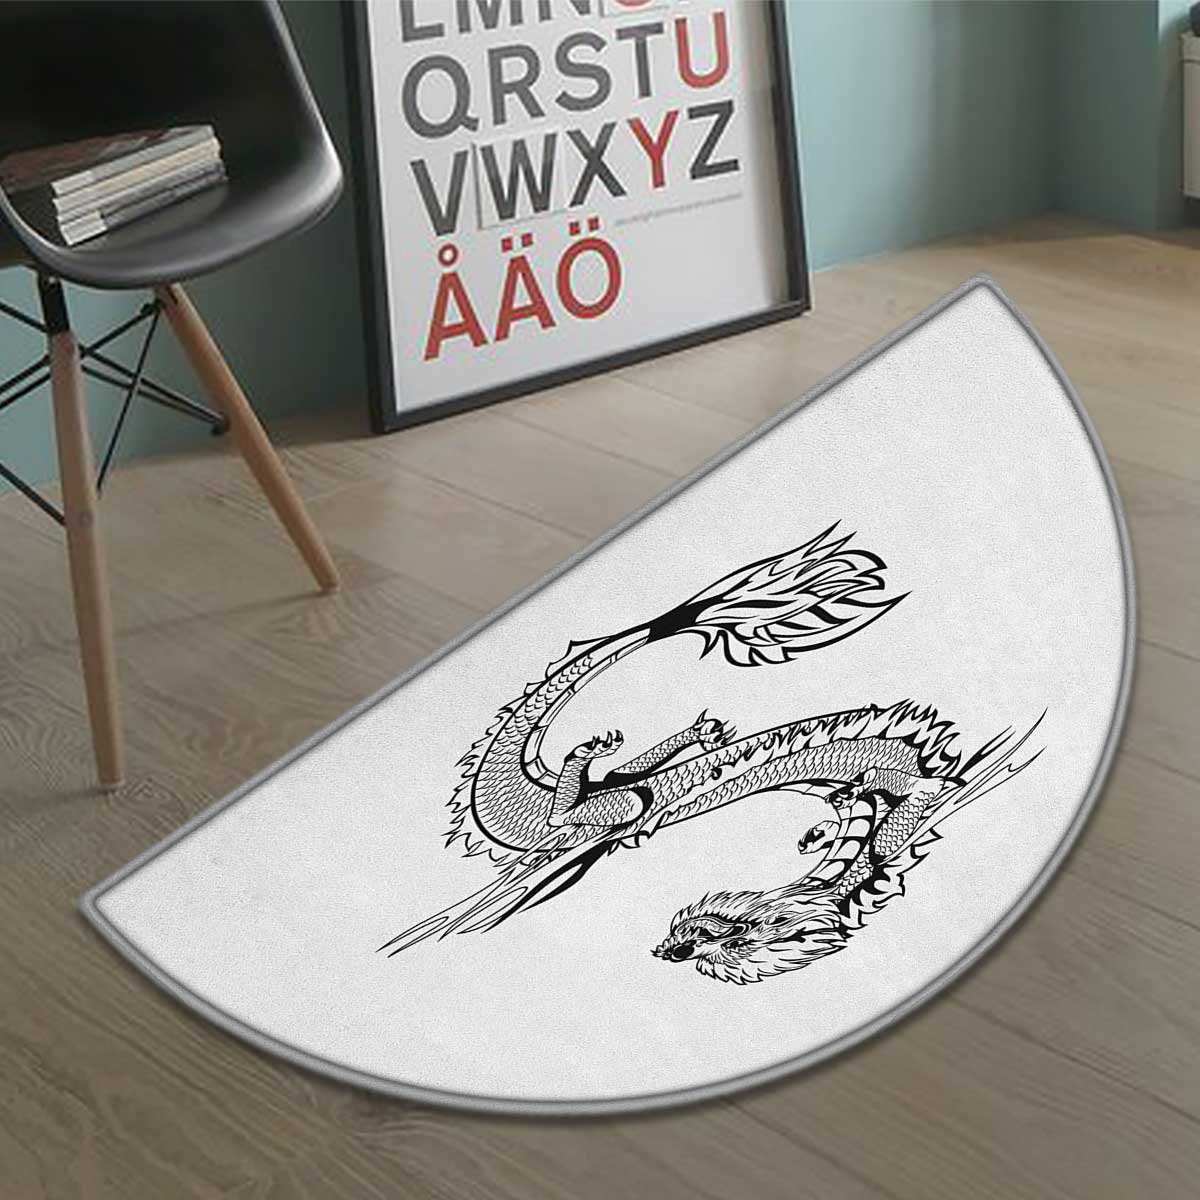 cobeDecor Japanese Dragon half moon door mats for home Ancient Far Eastern Culture Esoteric Magical Monster Symbolic Thai Style Bath Mat Bathroom Mat with Non Slip Black White size:31.5''x19.7''